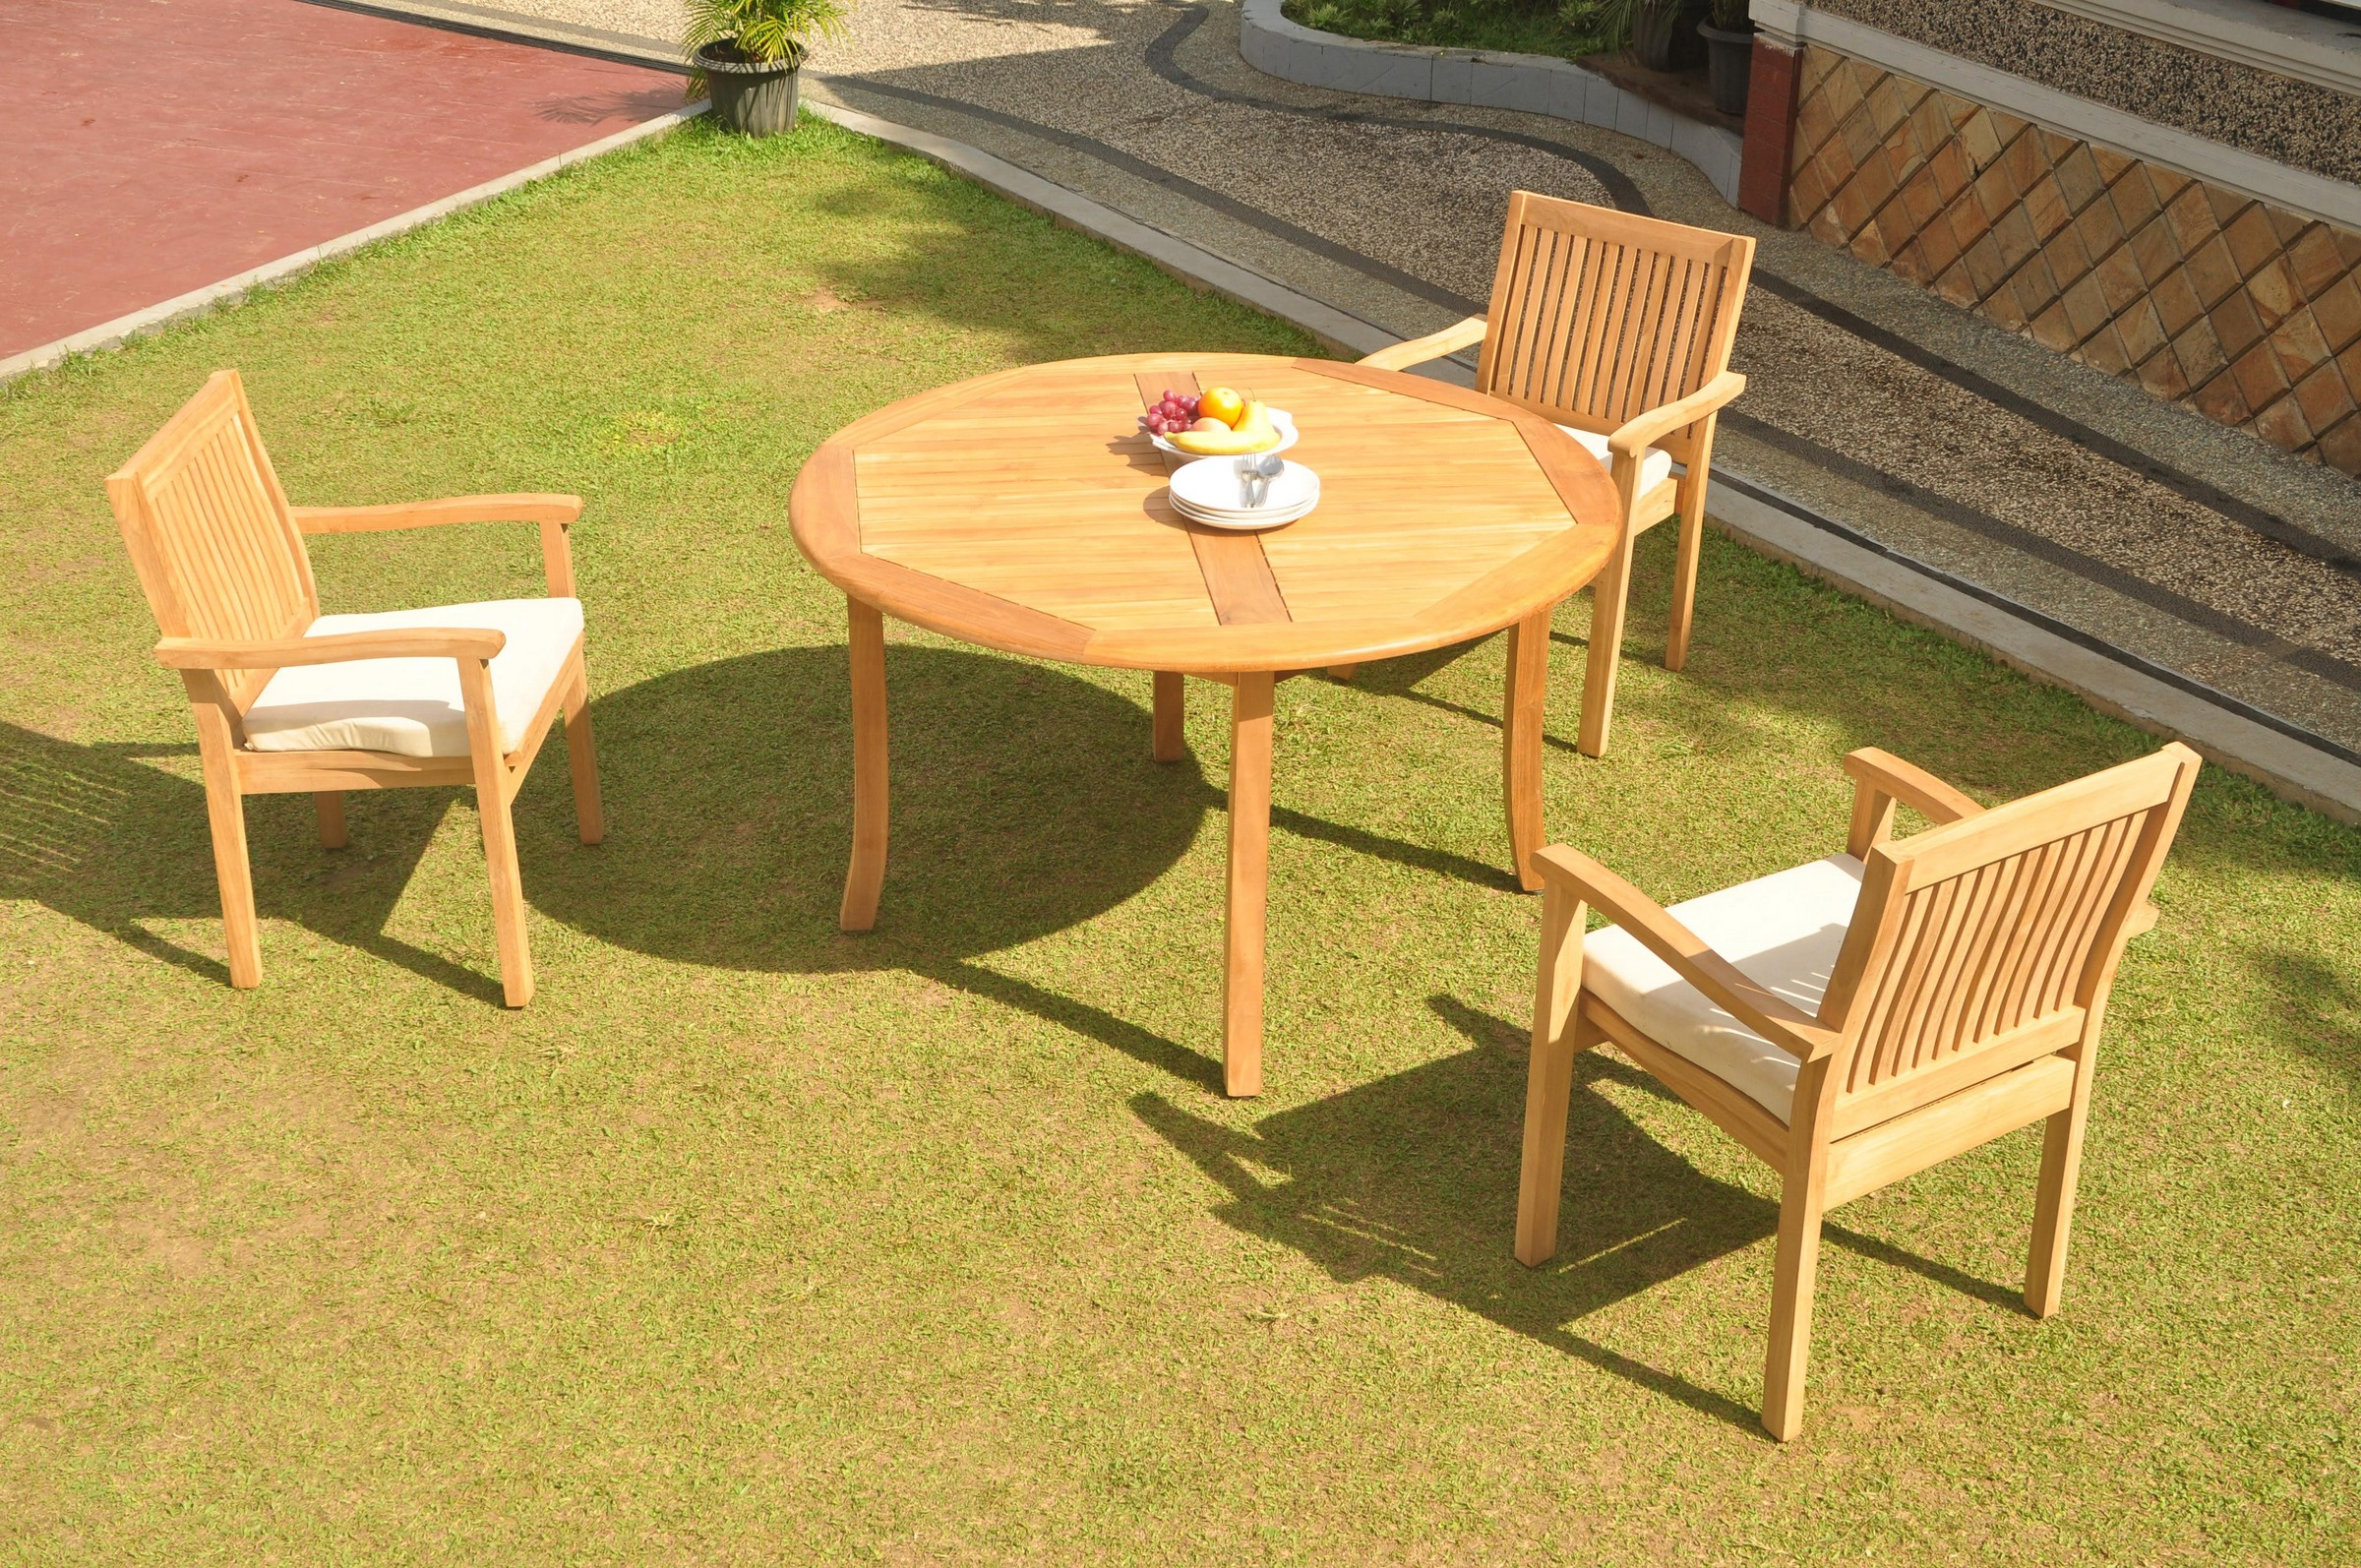 52 Round Table.Details About A Grade Teak 4pc Dining 52 Round Table 3 Leveb Stacking Arm Chair Set Outdoor